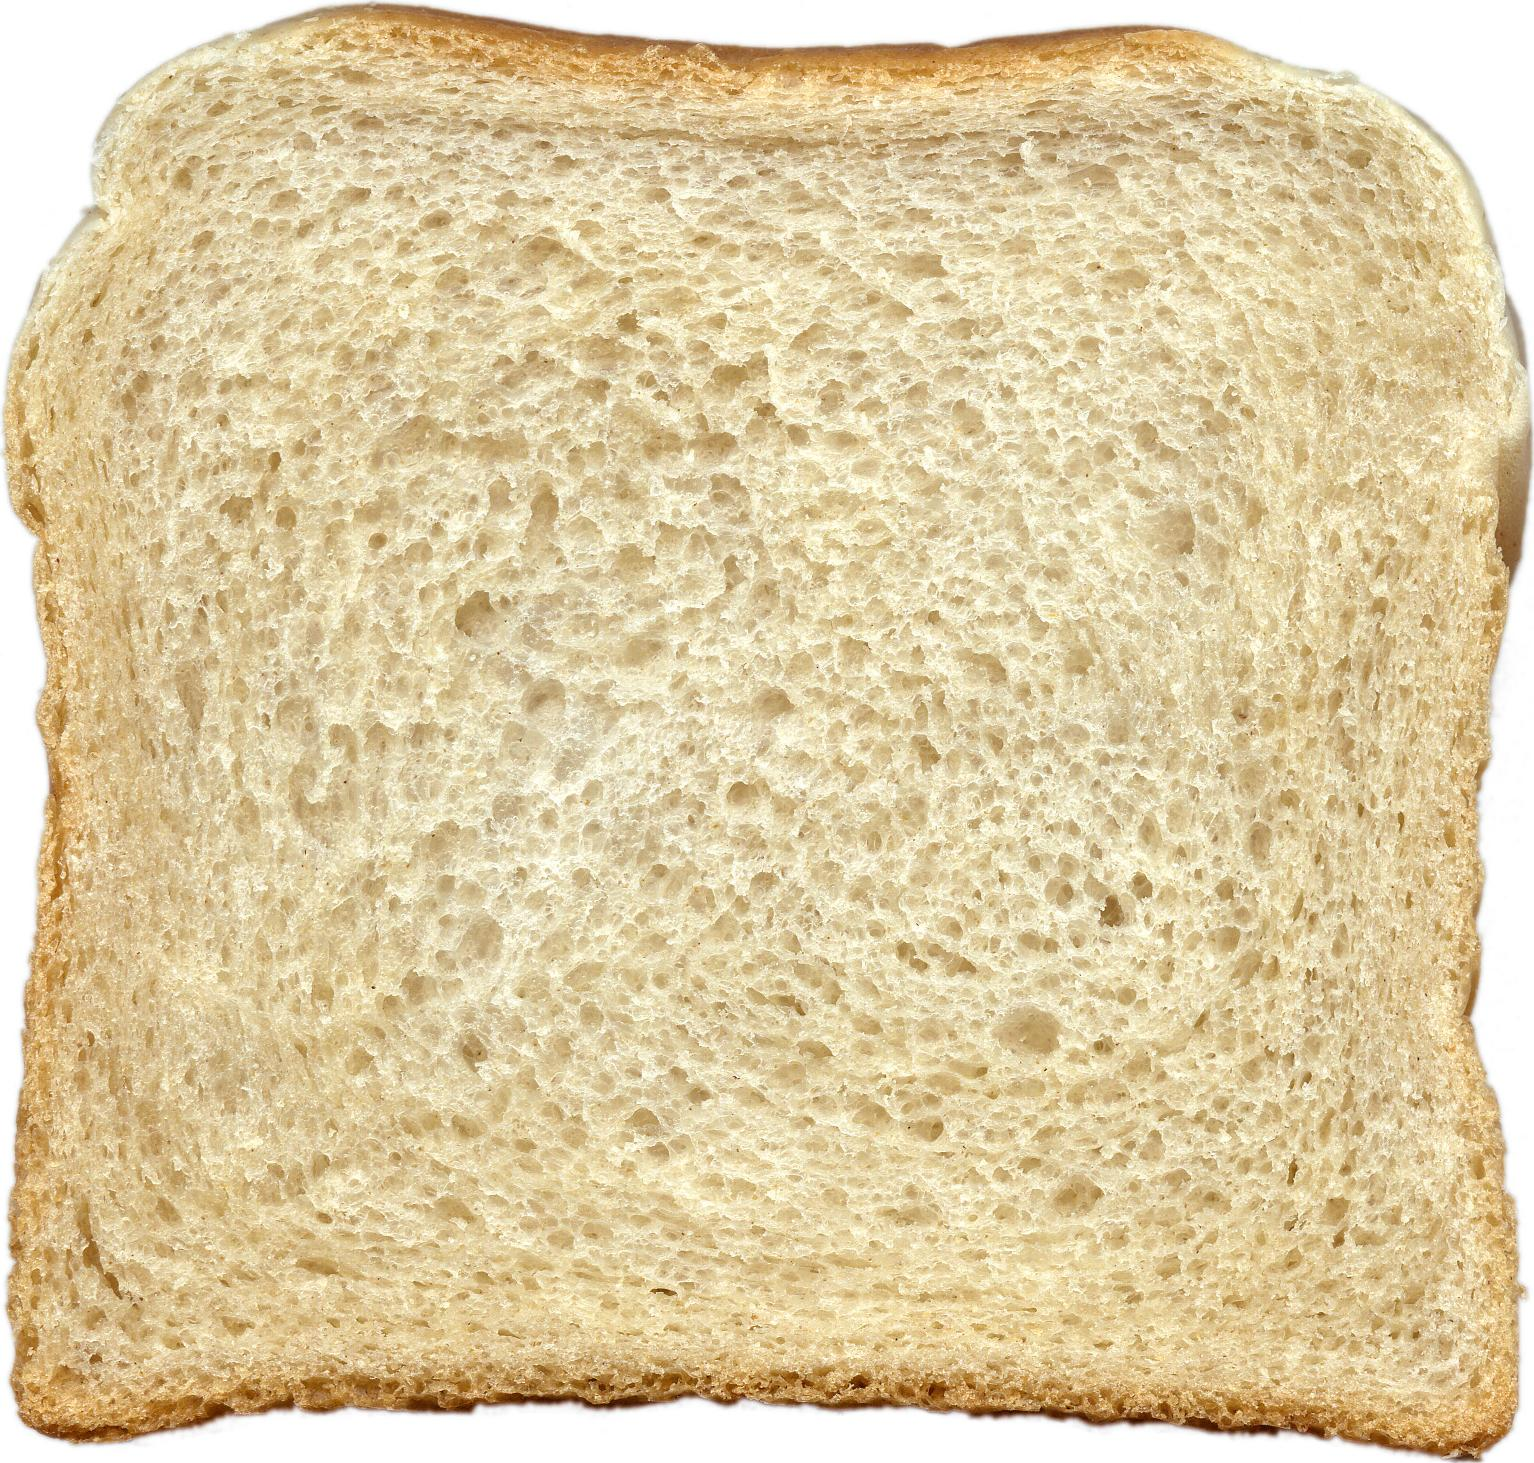 Bread slice Actual Size Image